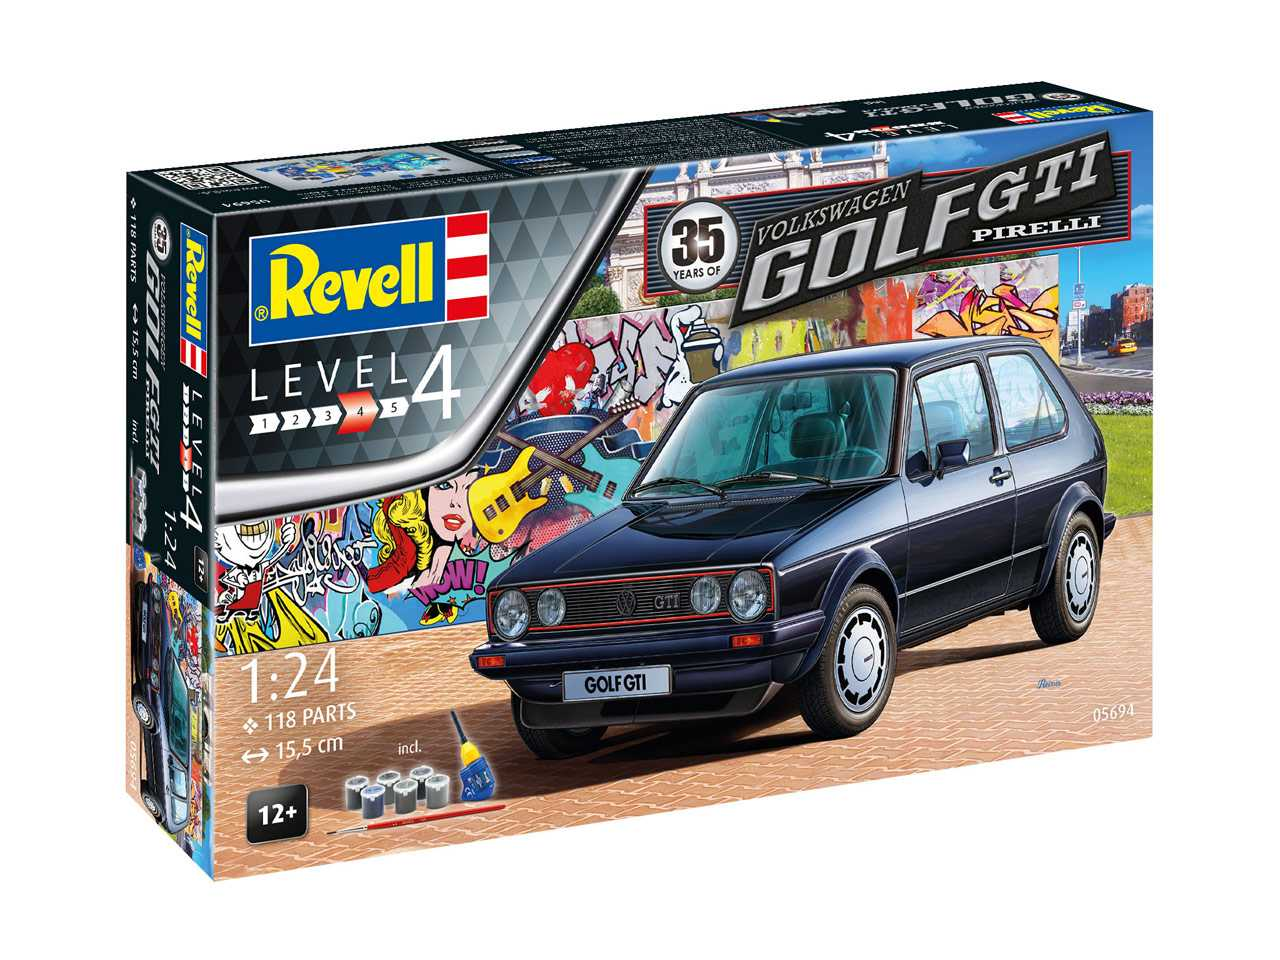 Náhled produktu - 1:24 VW Golf I GTi, Pirelli (35 Years)